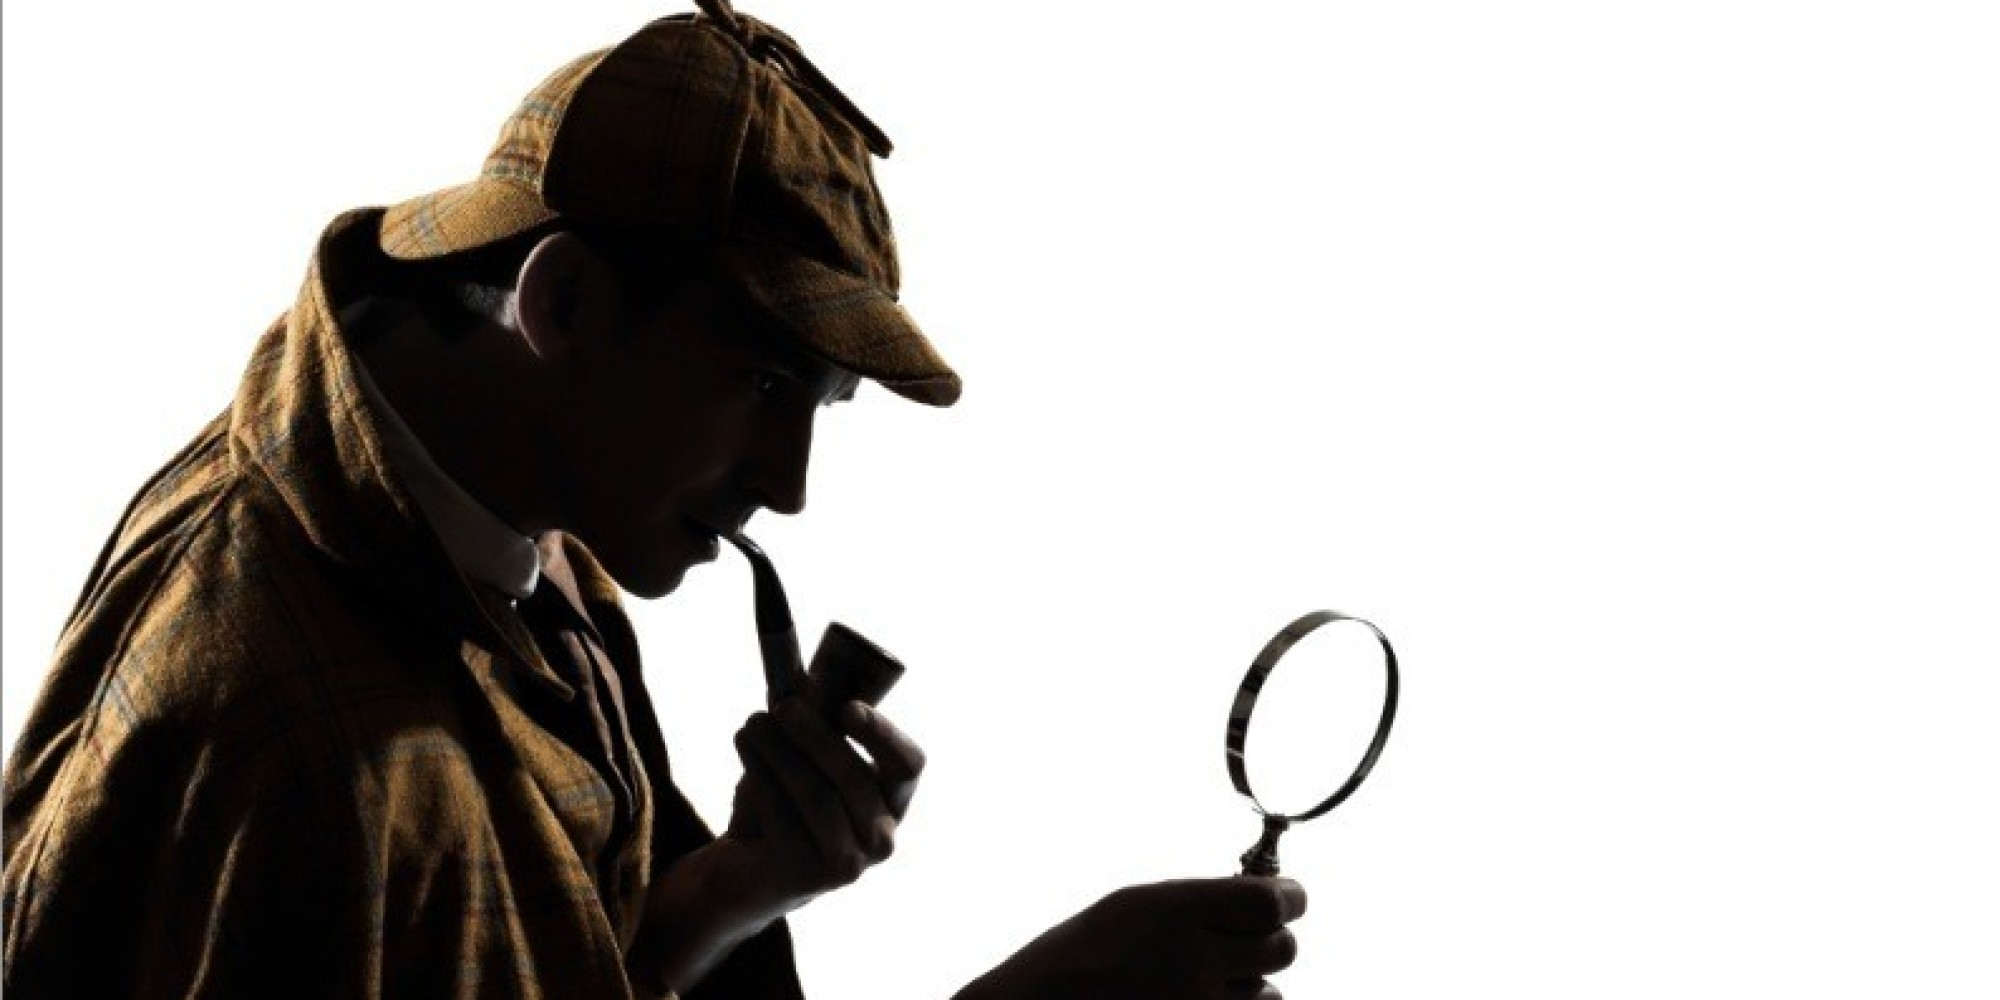 mystery stories sesay sherlock holmes The sherlock holmes stories helped marry forensic science famed american mystery writer john dickson carr collaborated with arthur conan doyle's son.